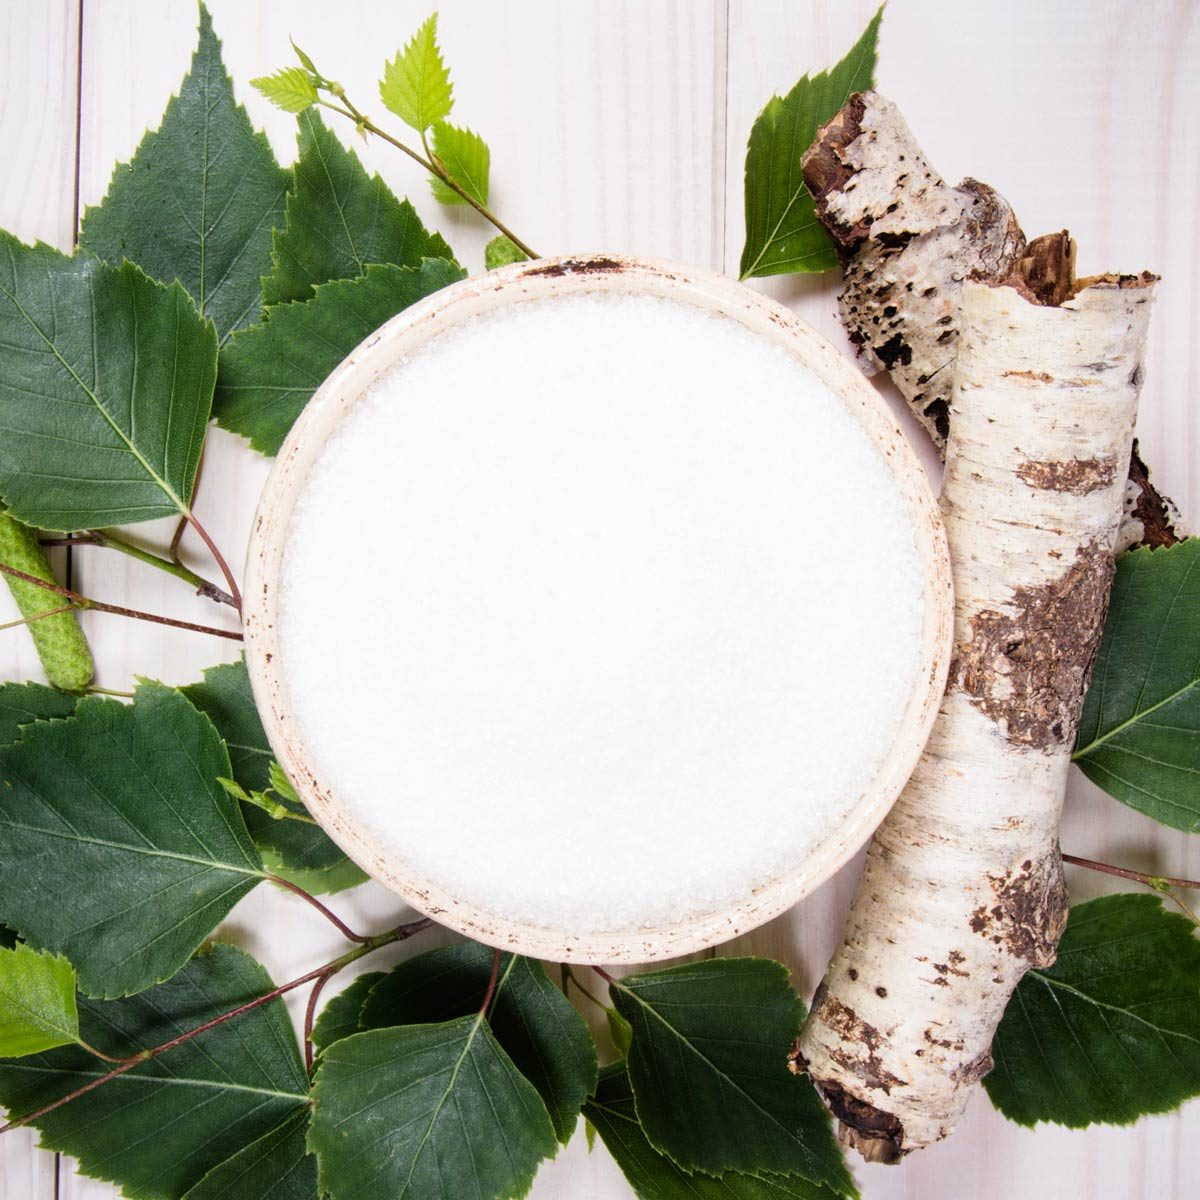 Bowl of Xylitol